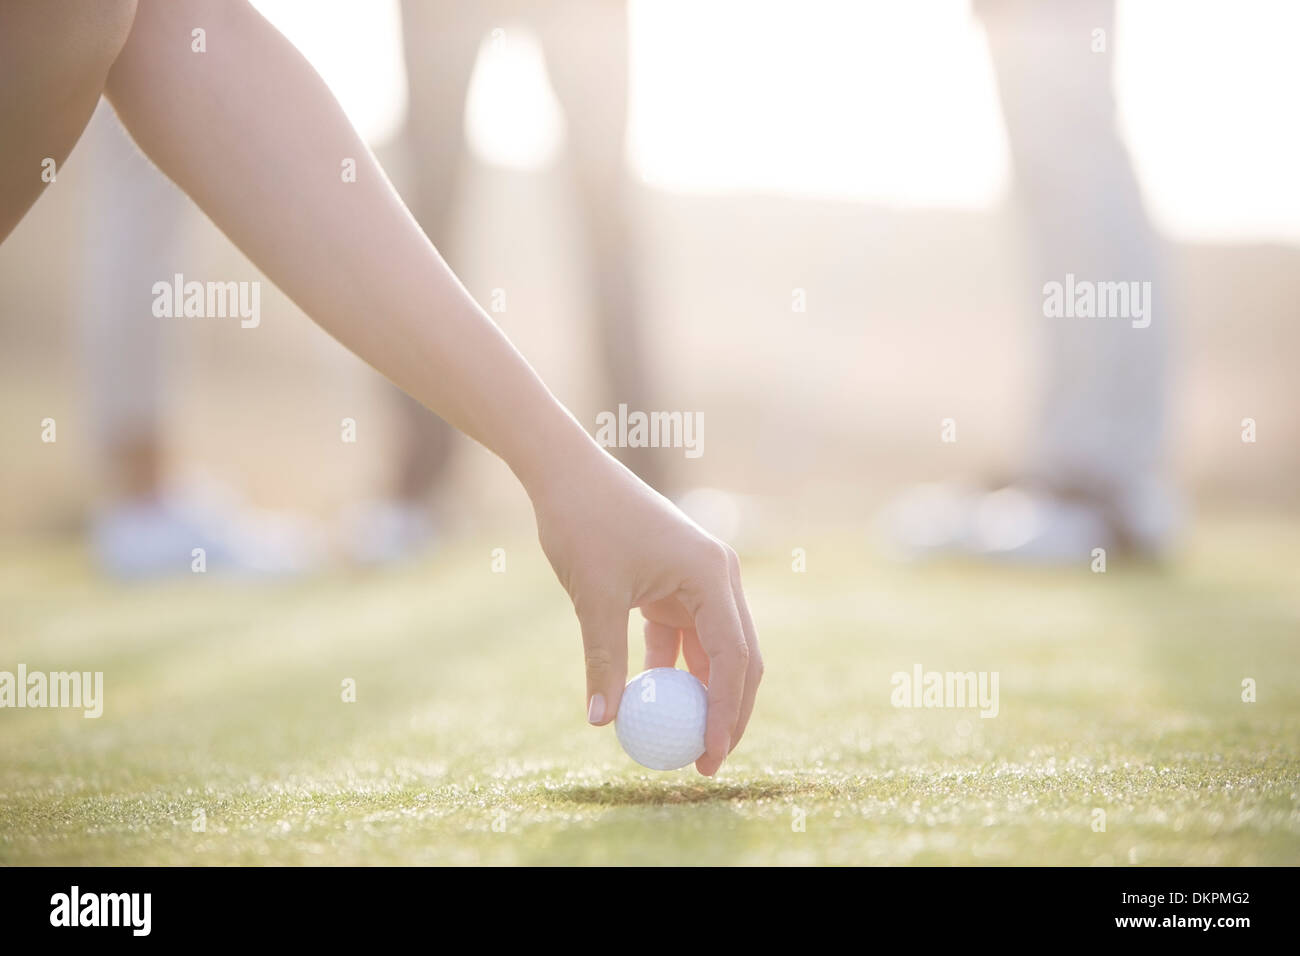 Woman teeing golf ball on course - Stock Image